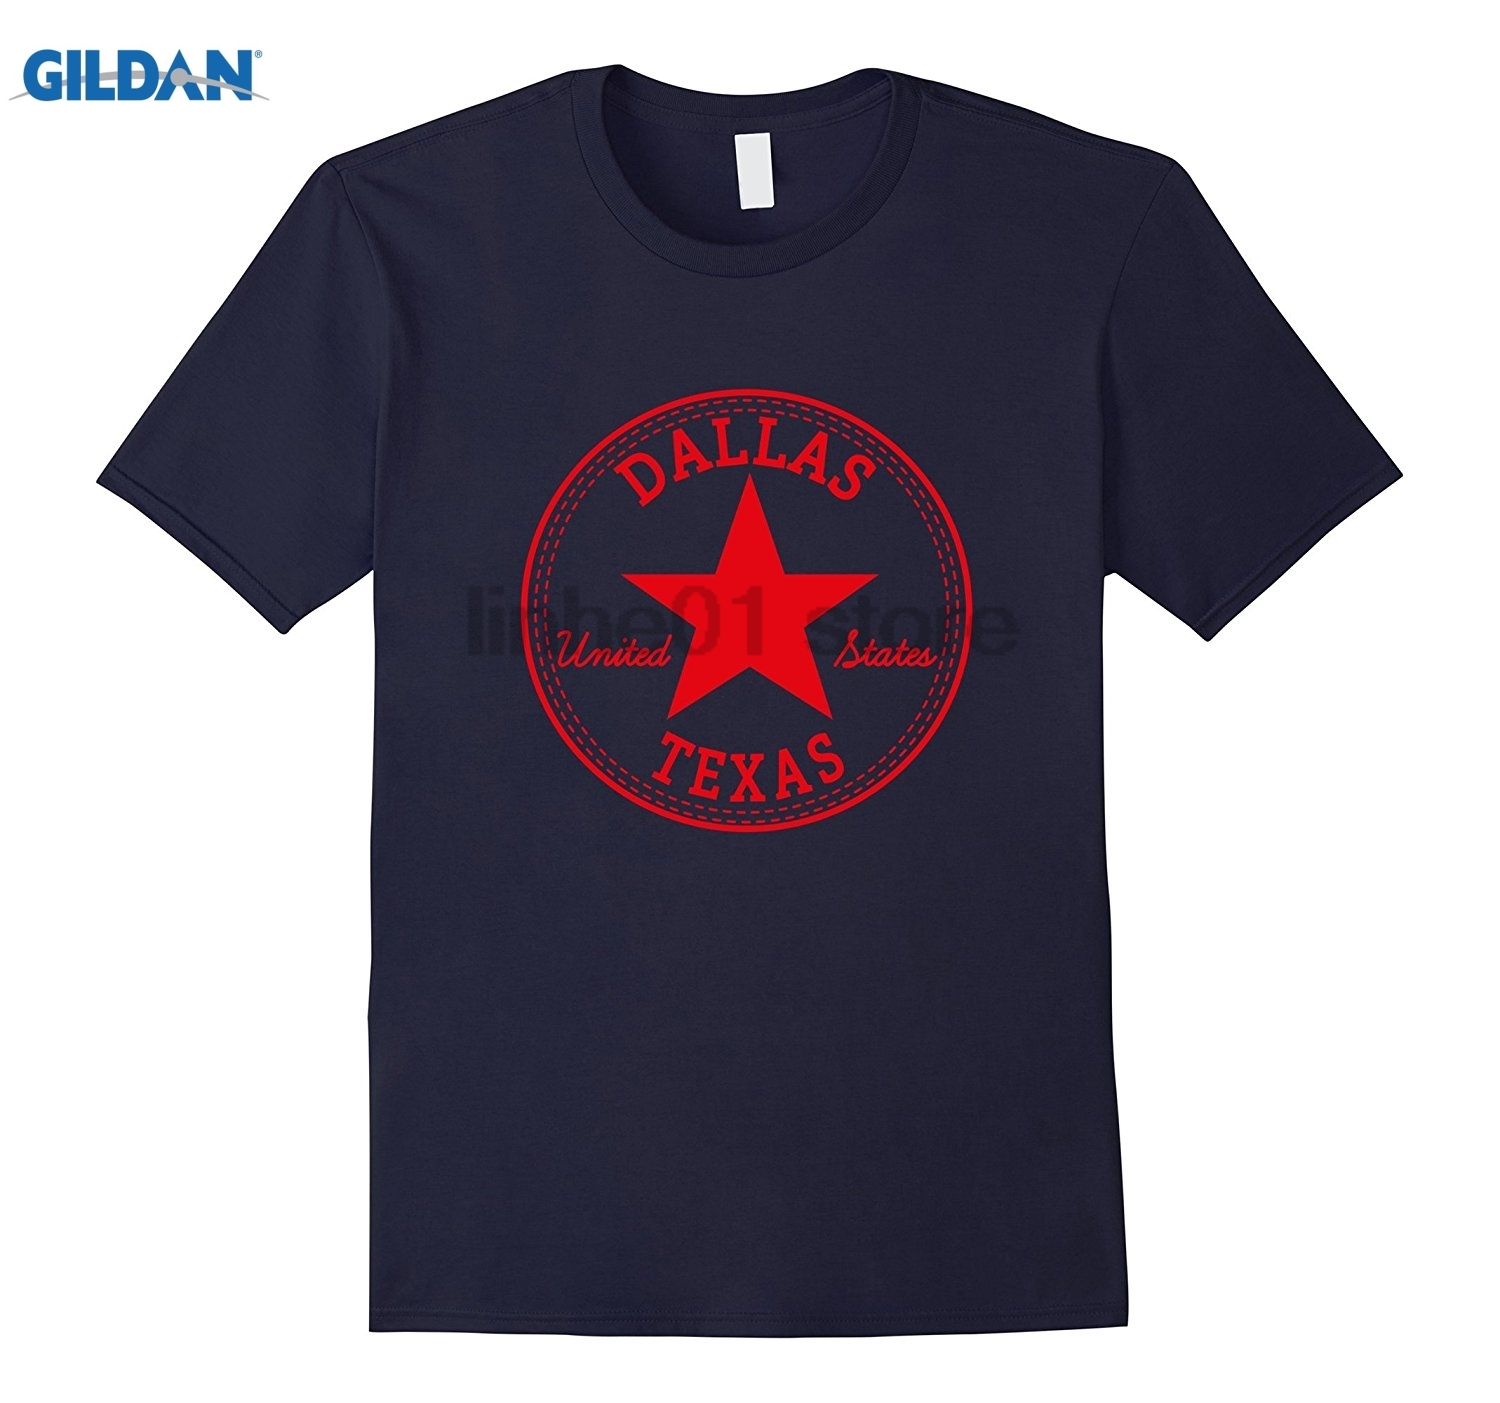 GILDAN Dallas - Texas - United States USA Relaxed Fit T-Shirt glasses Womens T-shirt